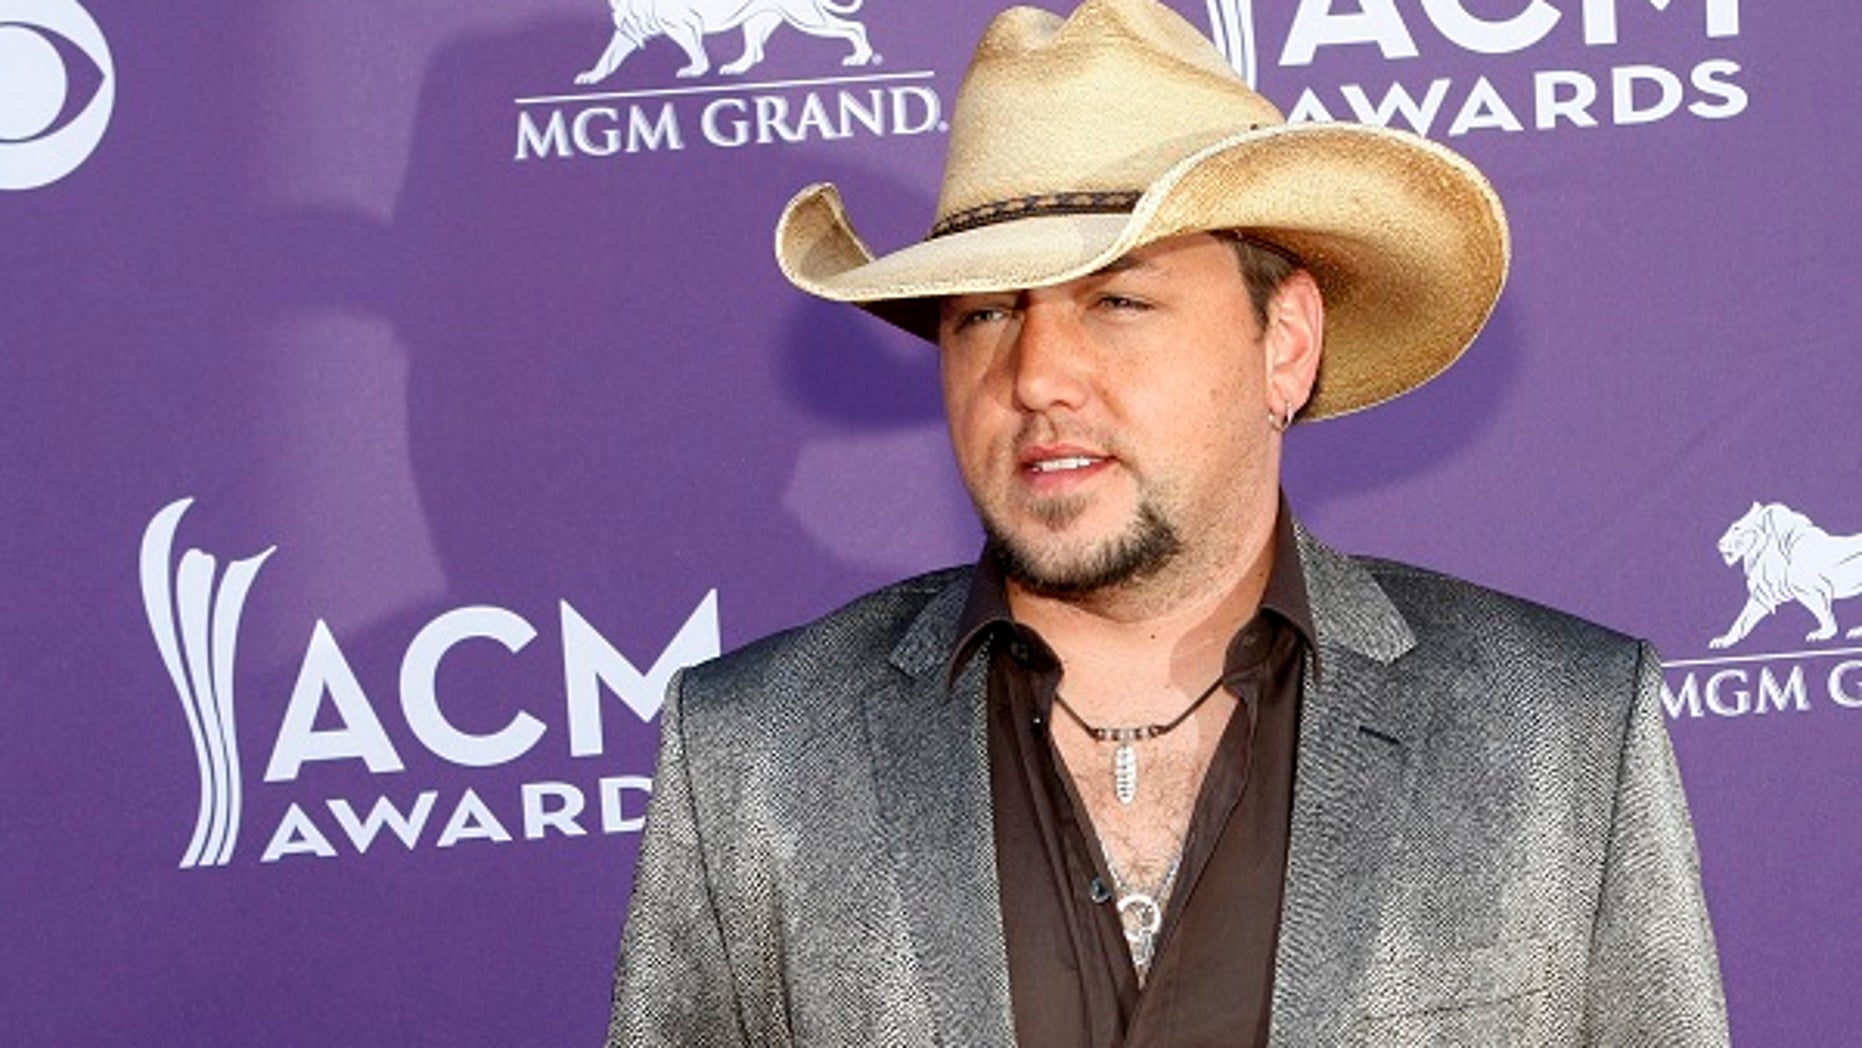 Singer Jason Aldean performed at the Las Vegas concert where 58 people were killed in October 2017.